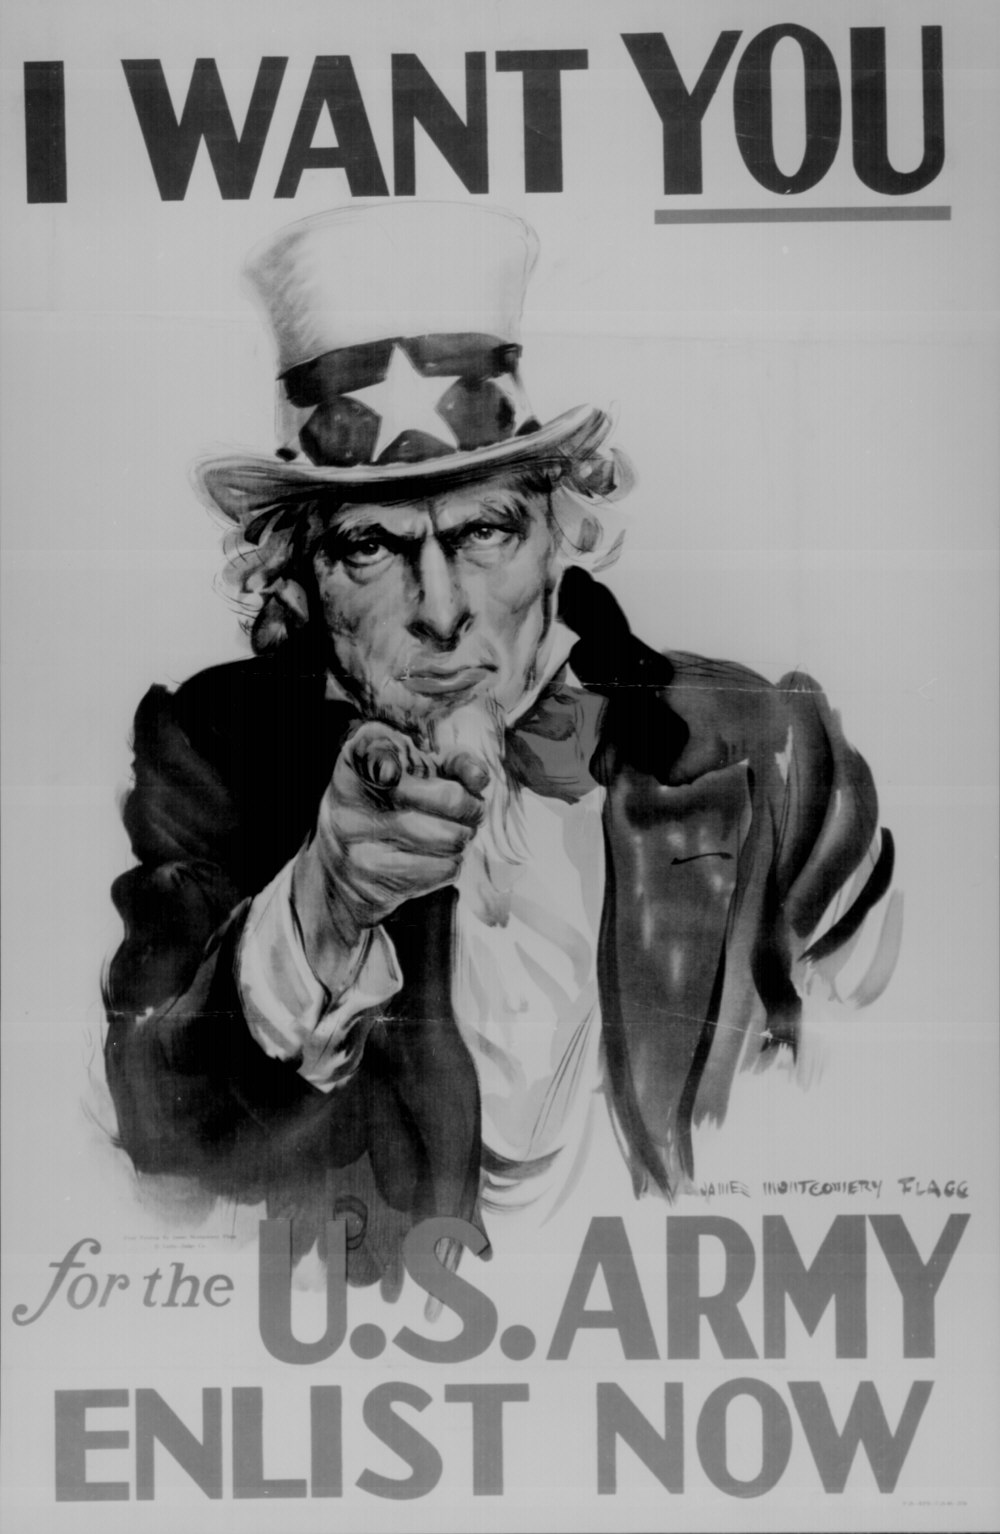 i want you for the u s army